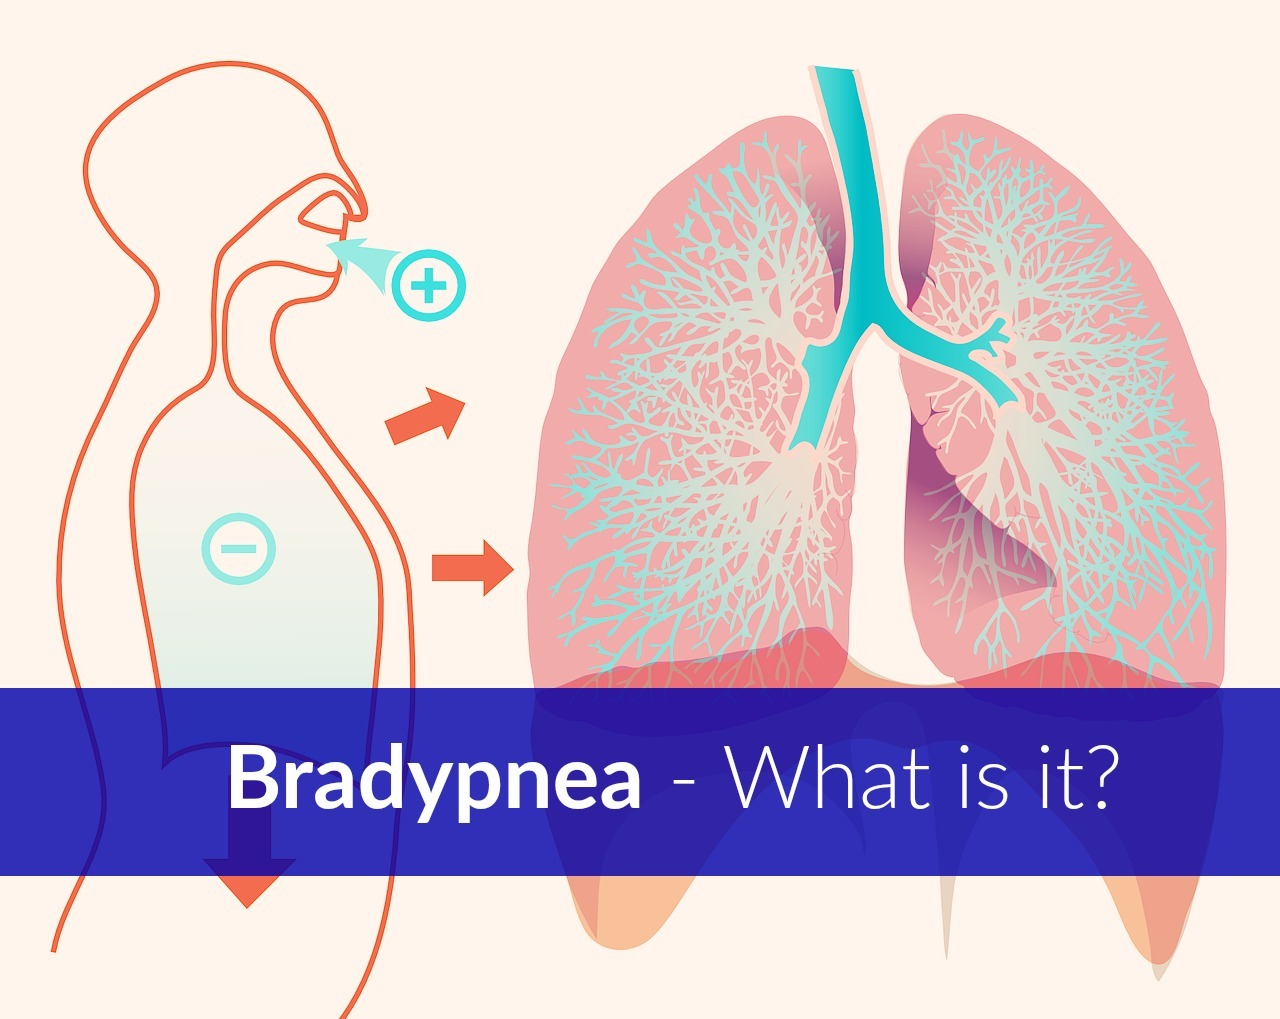 bradypnea-what-is-it